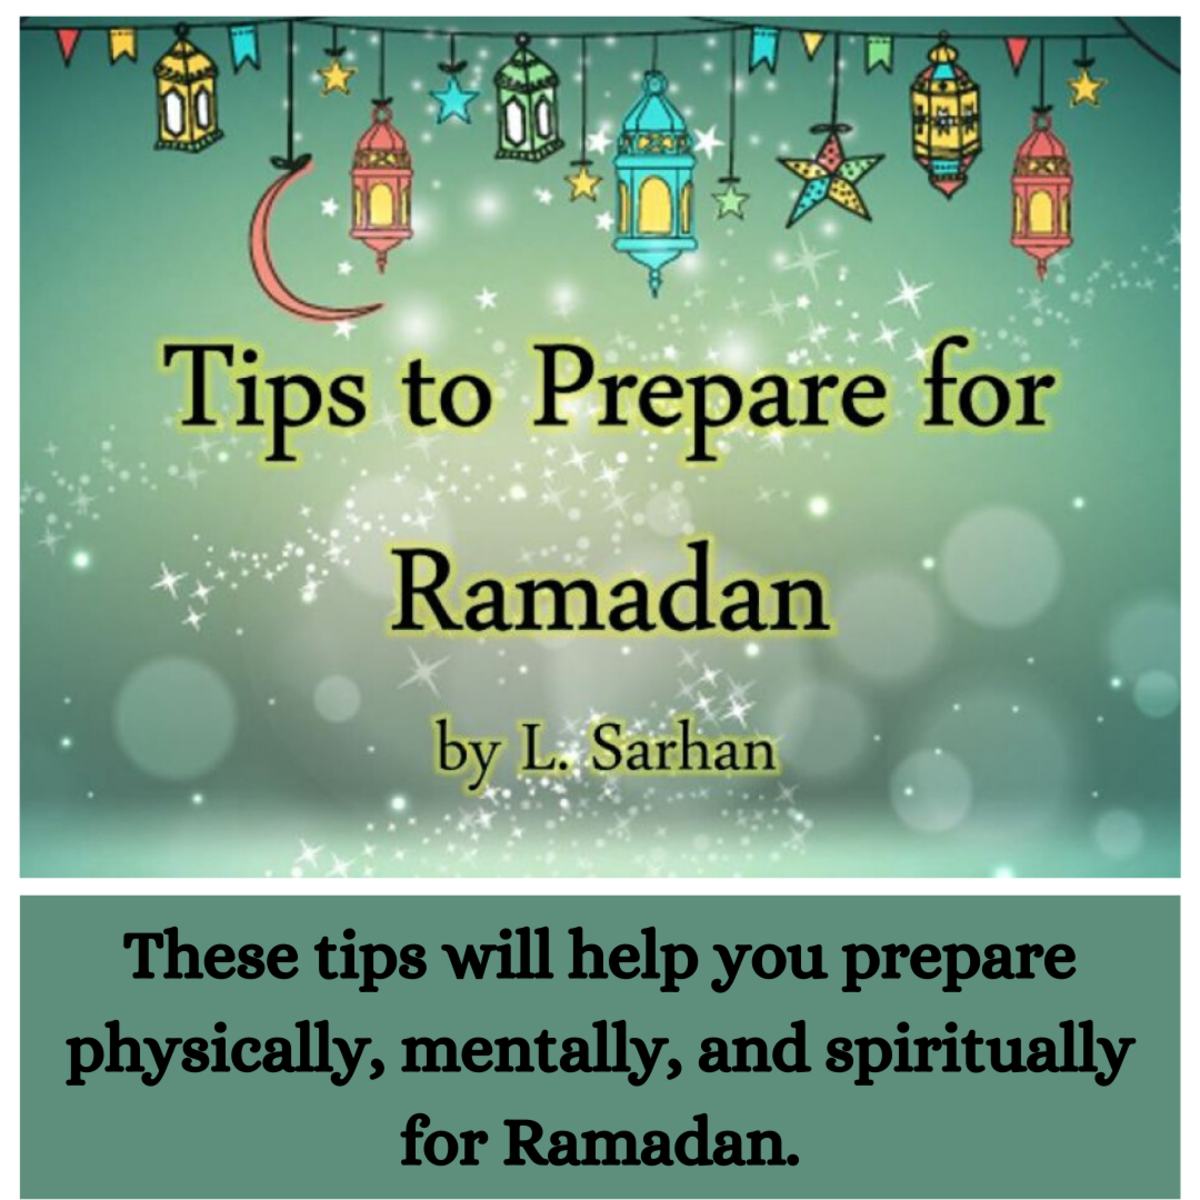 This article contains tips to help Muslims prepare physically, mentally, and spiritually for Ramadan - the holiest month in the Islamic calendar.